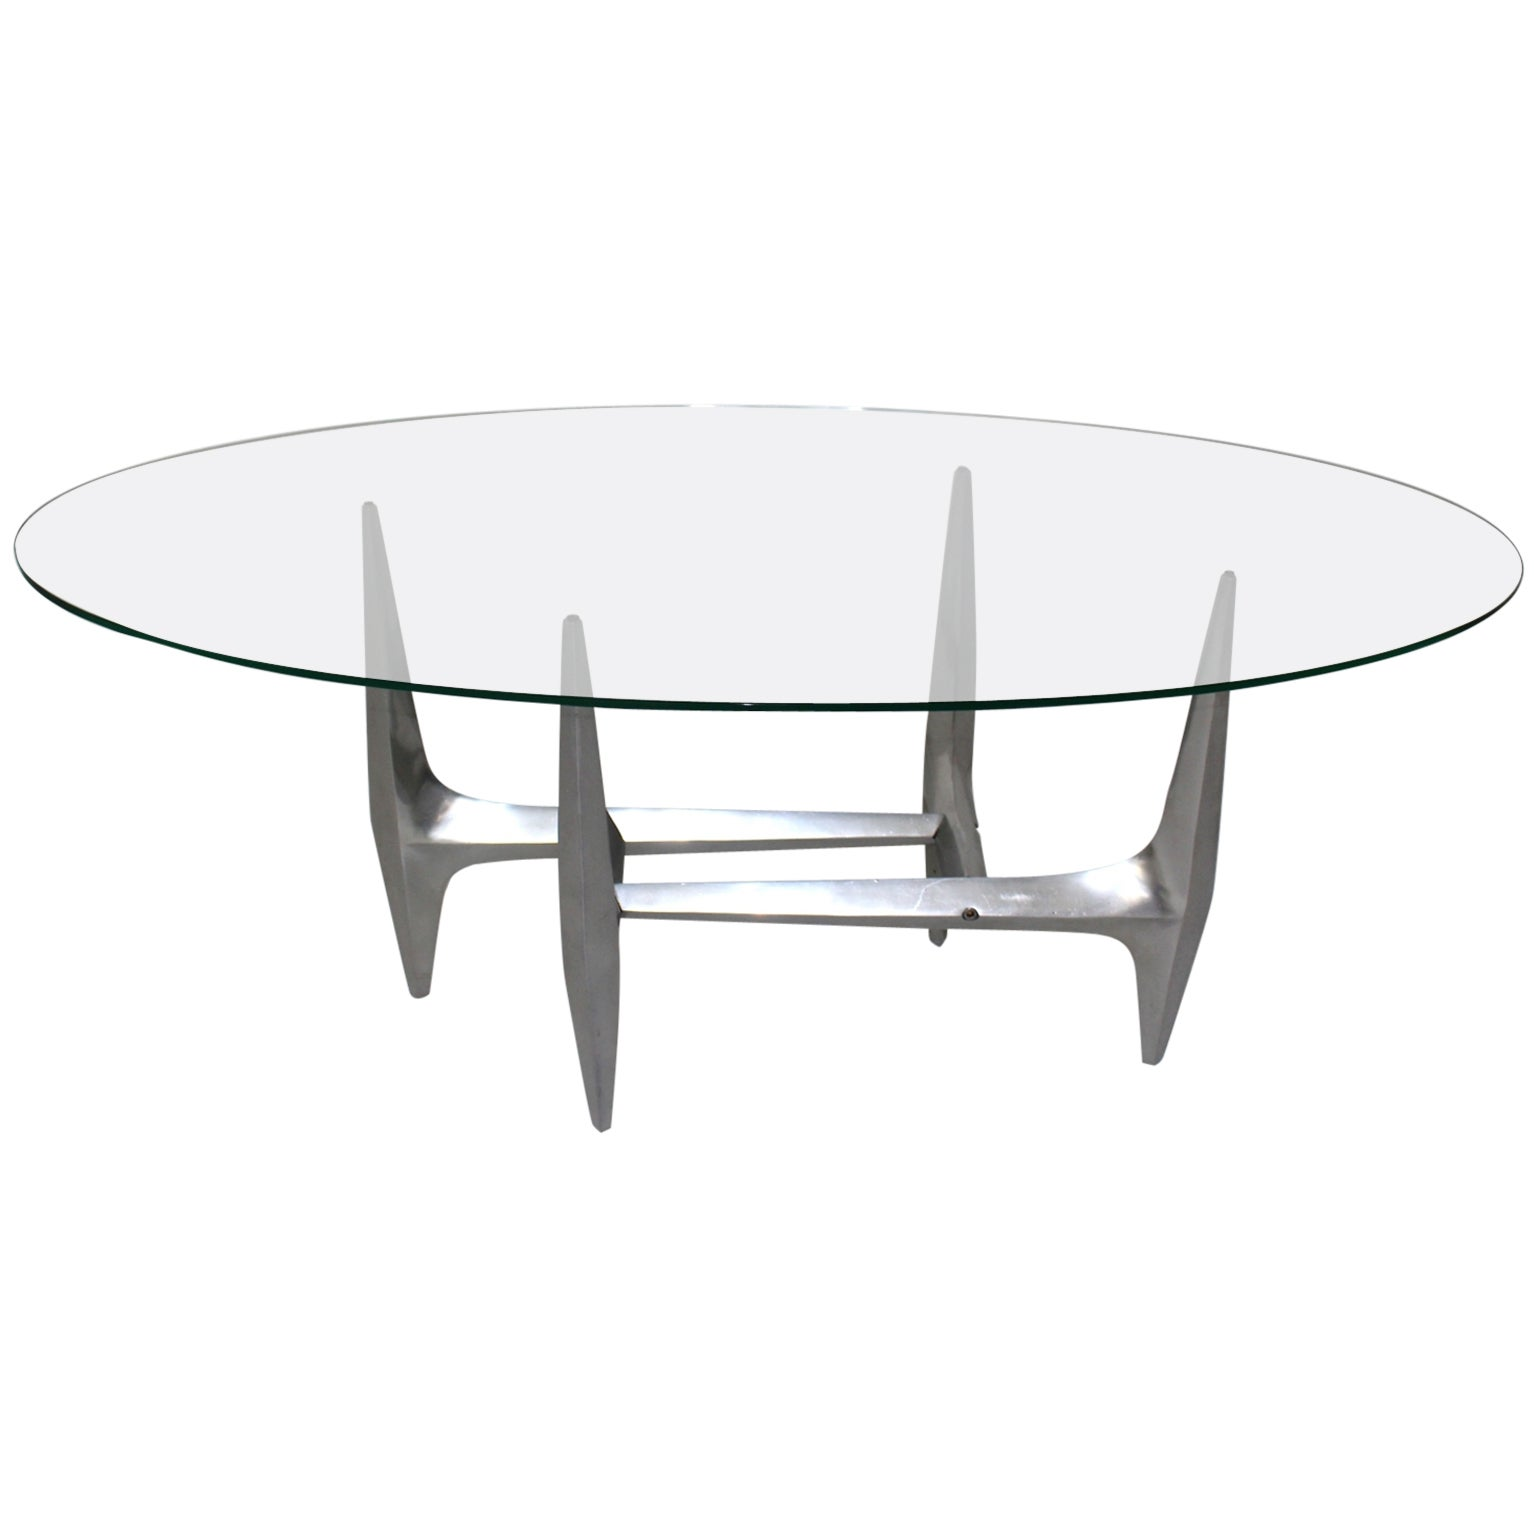 Mid Century Modern Metal Vintage Coffee Table by Knut Hesterberg 1960s